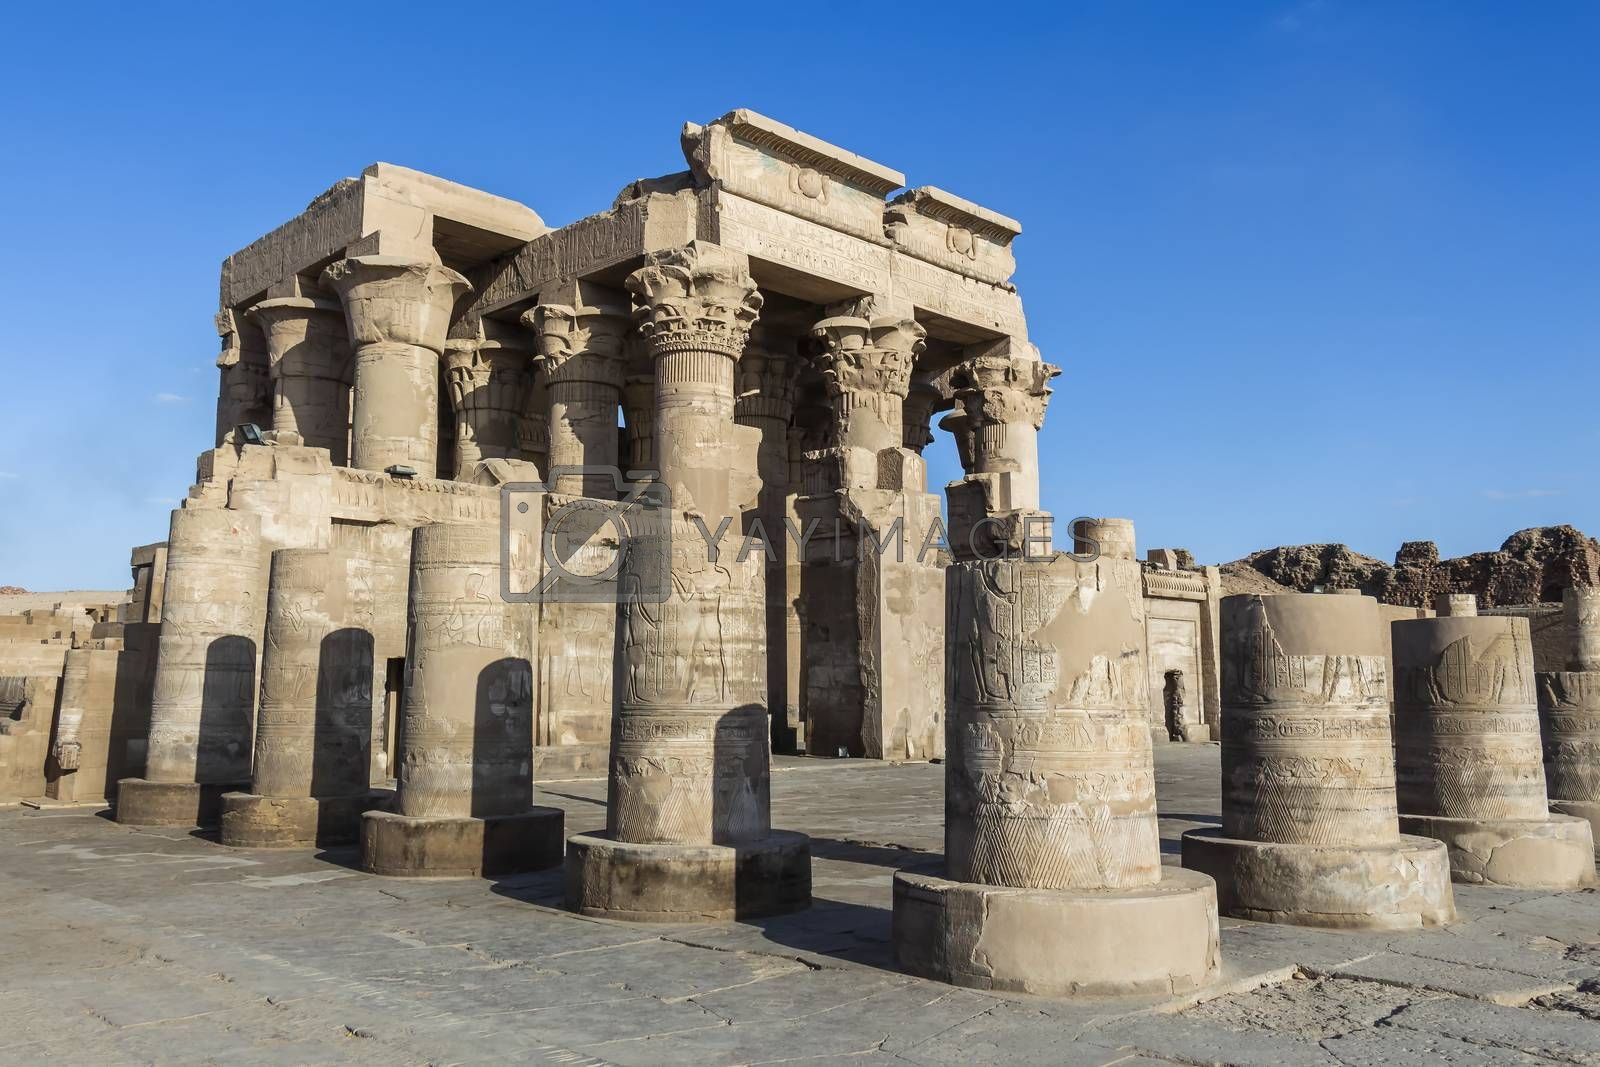 The Temple of Kom Ombo in Aswan, dedicated to ancient Egyptian gods Sobek and Horus